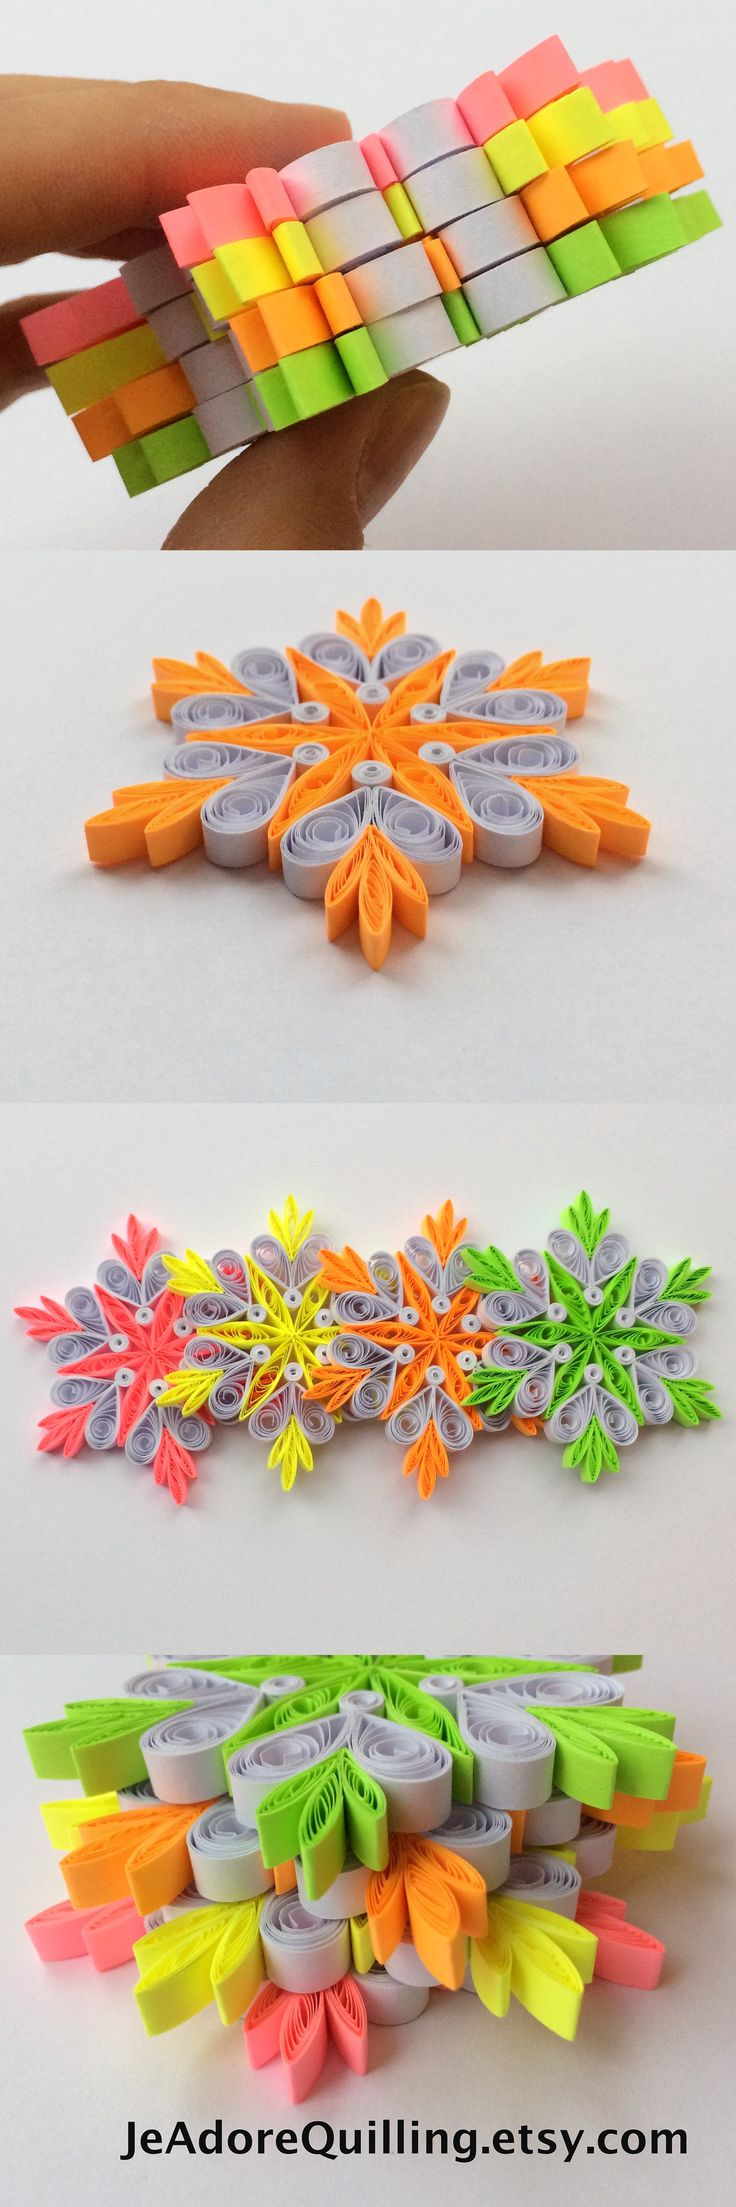 Snowflakes Neon Yellow Pink Green Orange White Christmas Tree Decor Winter Ornament Gift Toppers Fillers Office Corporate Paper Quilling Art